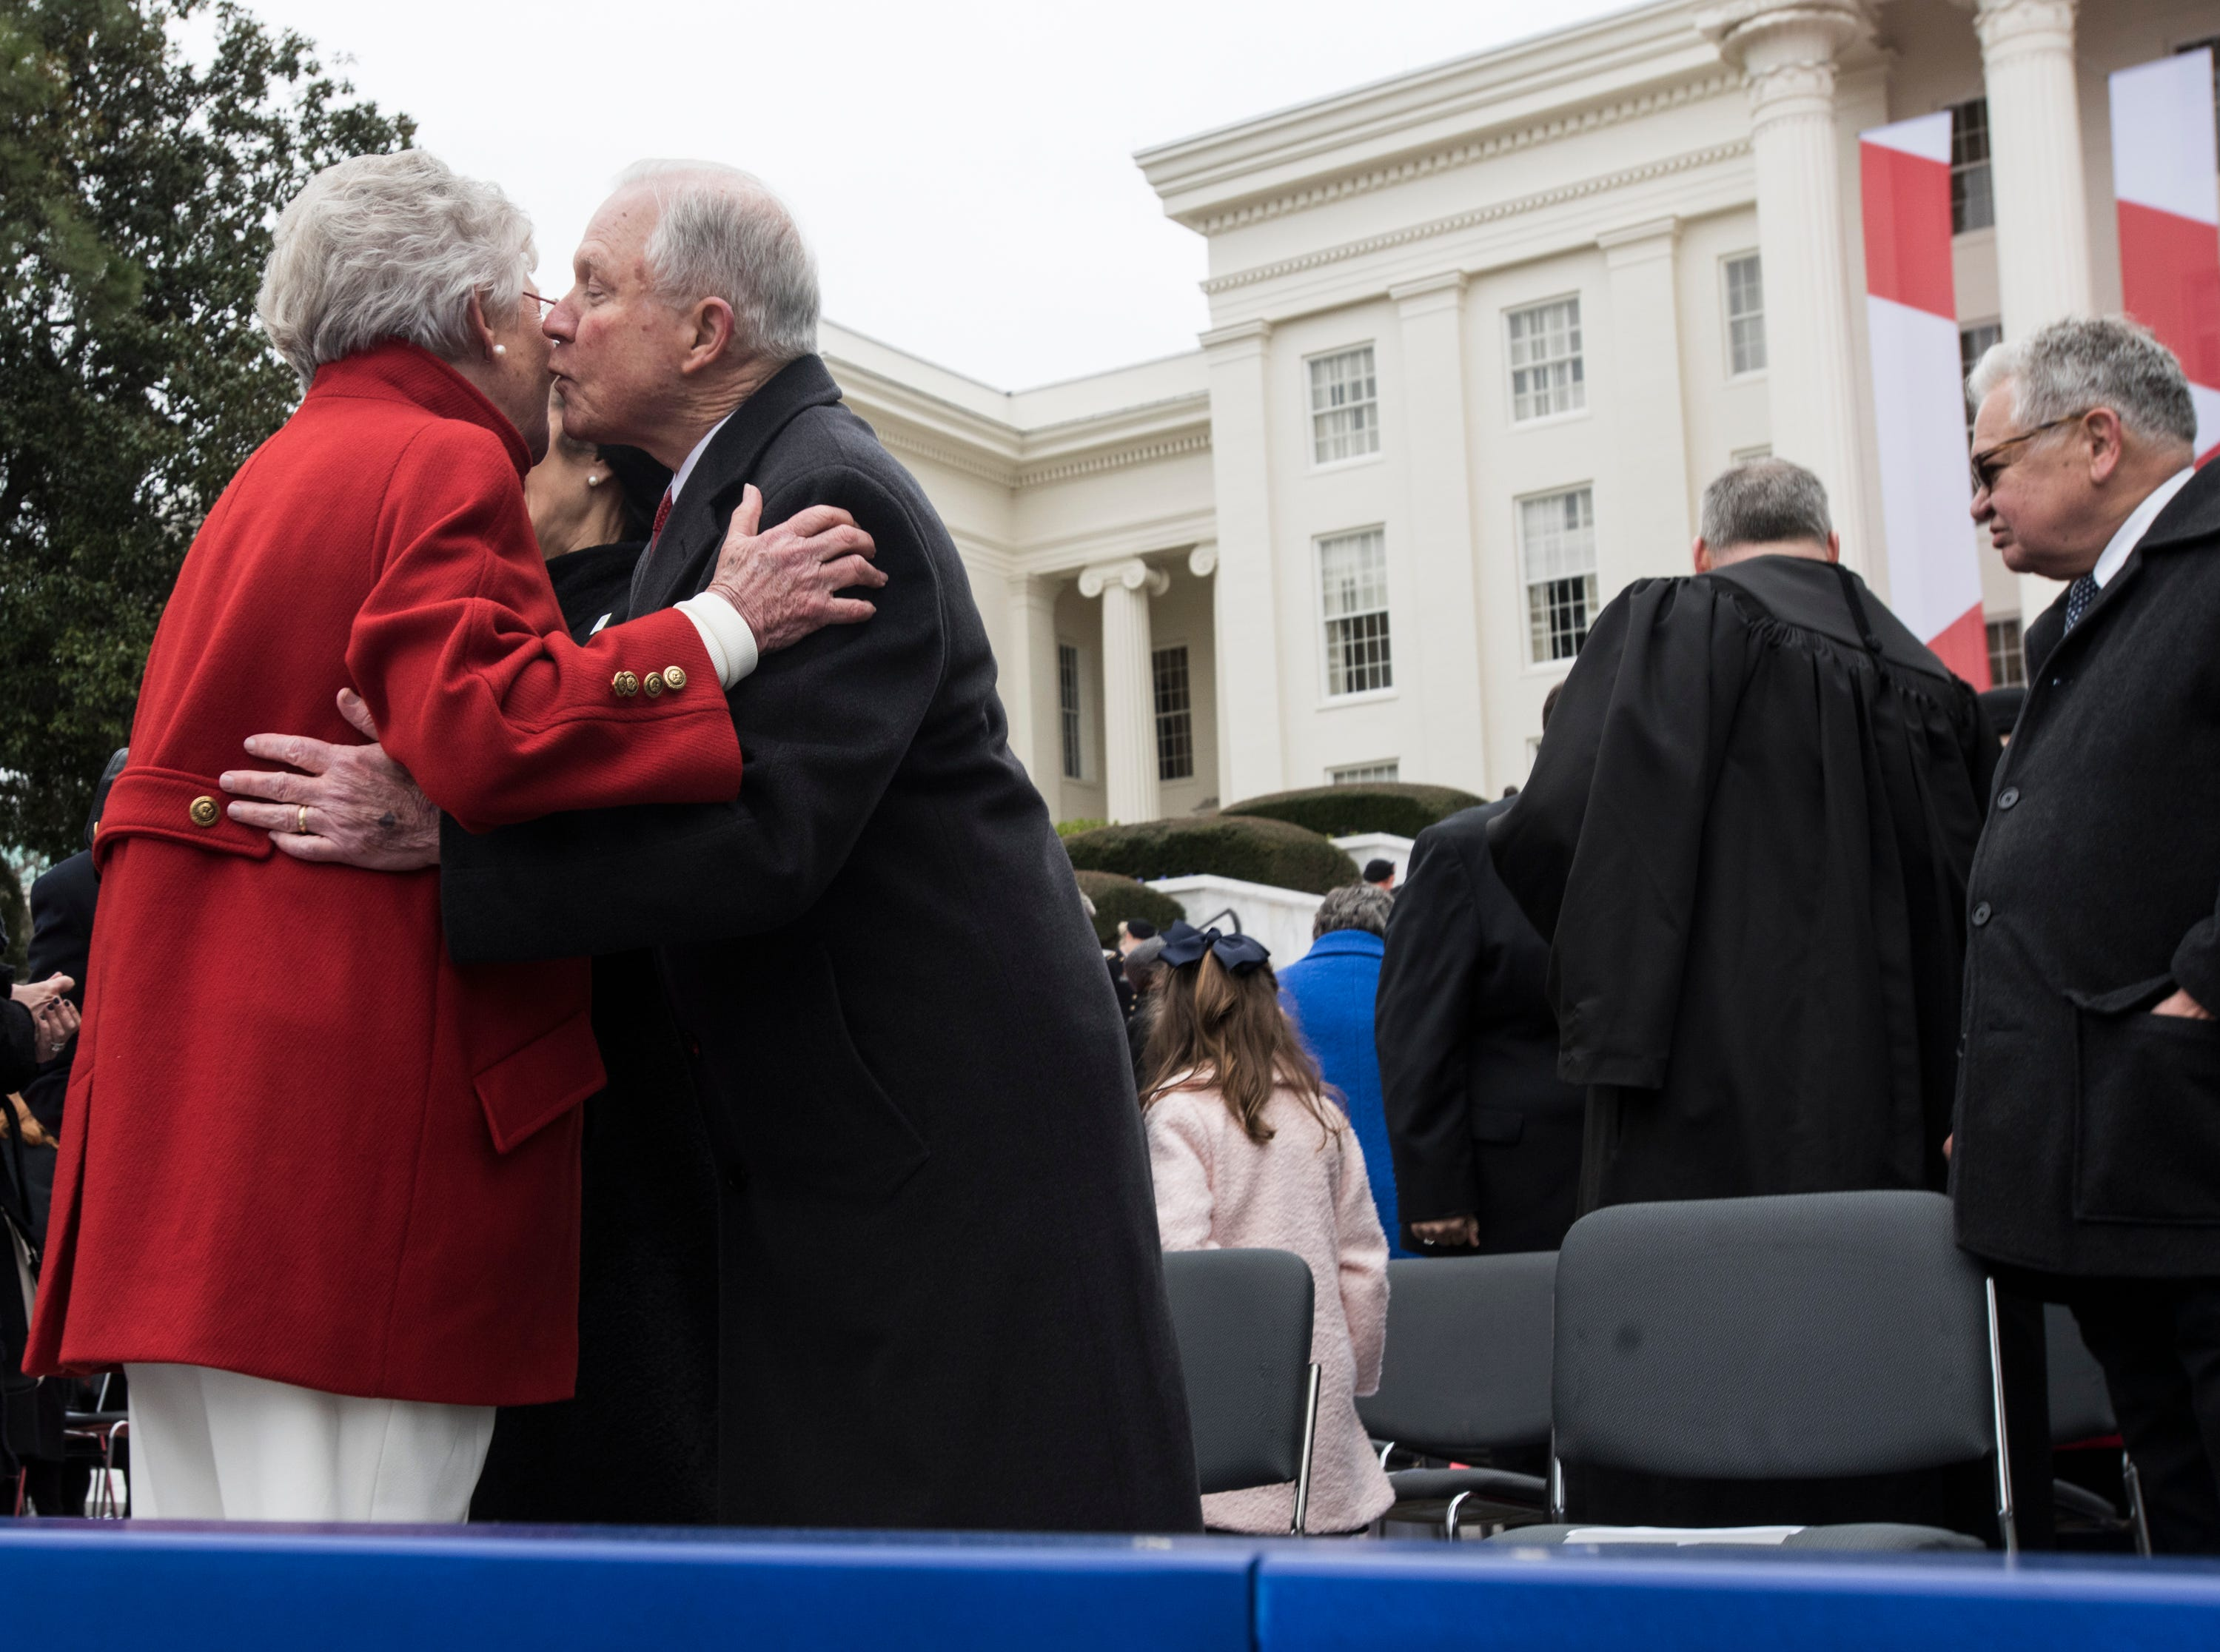 Former U.S. Attorney General Jeff Sessions congratulates Alabama Gov. Kay Ivey during Inauguration Day on the steps of the Alabama State Capitol in Montgomery, Ala., on Monday, Jan. 14, 2019.